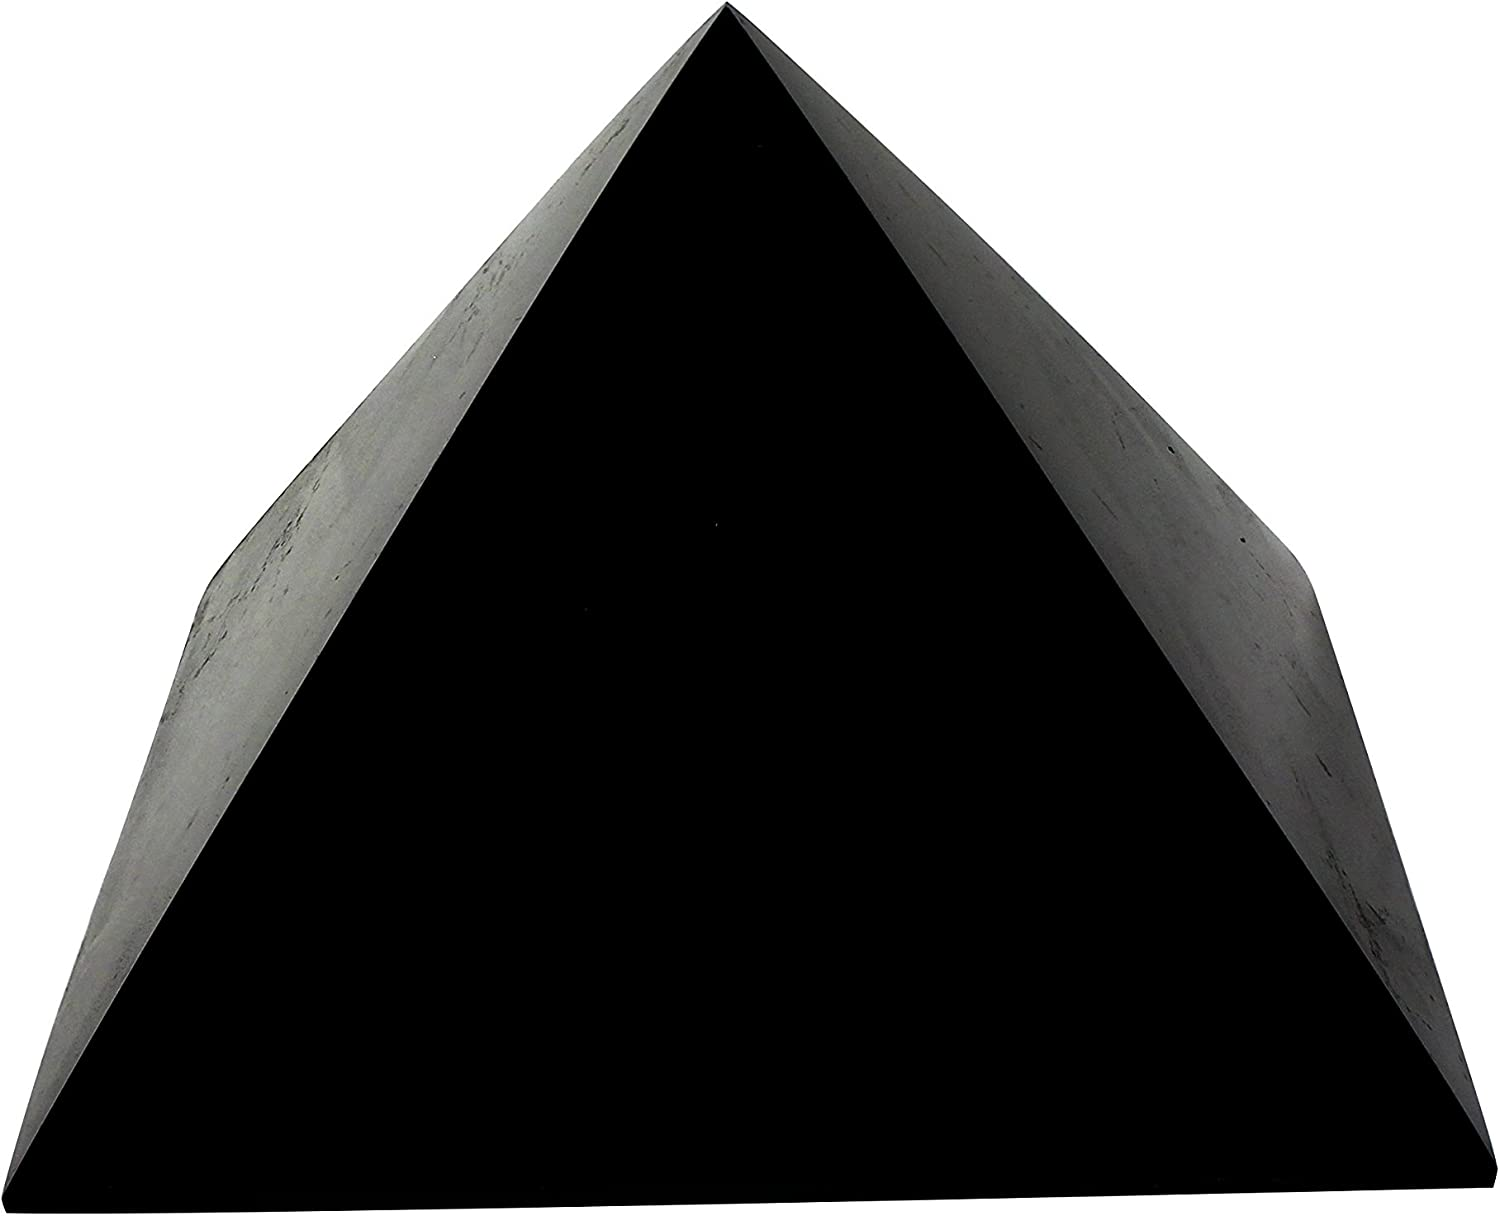 Heka Naturals Polished Shungite Pyramid 6 Inches, Contains Fullerenes for EMF Protection | Authentic Anti-Radiation Shungite Stone Figures from Karelia, Russia | 6 inch Pyramid, Polished